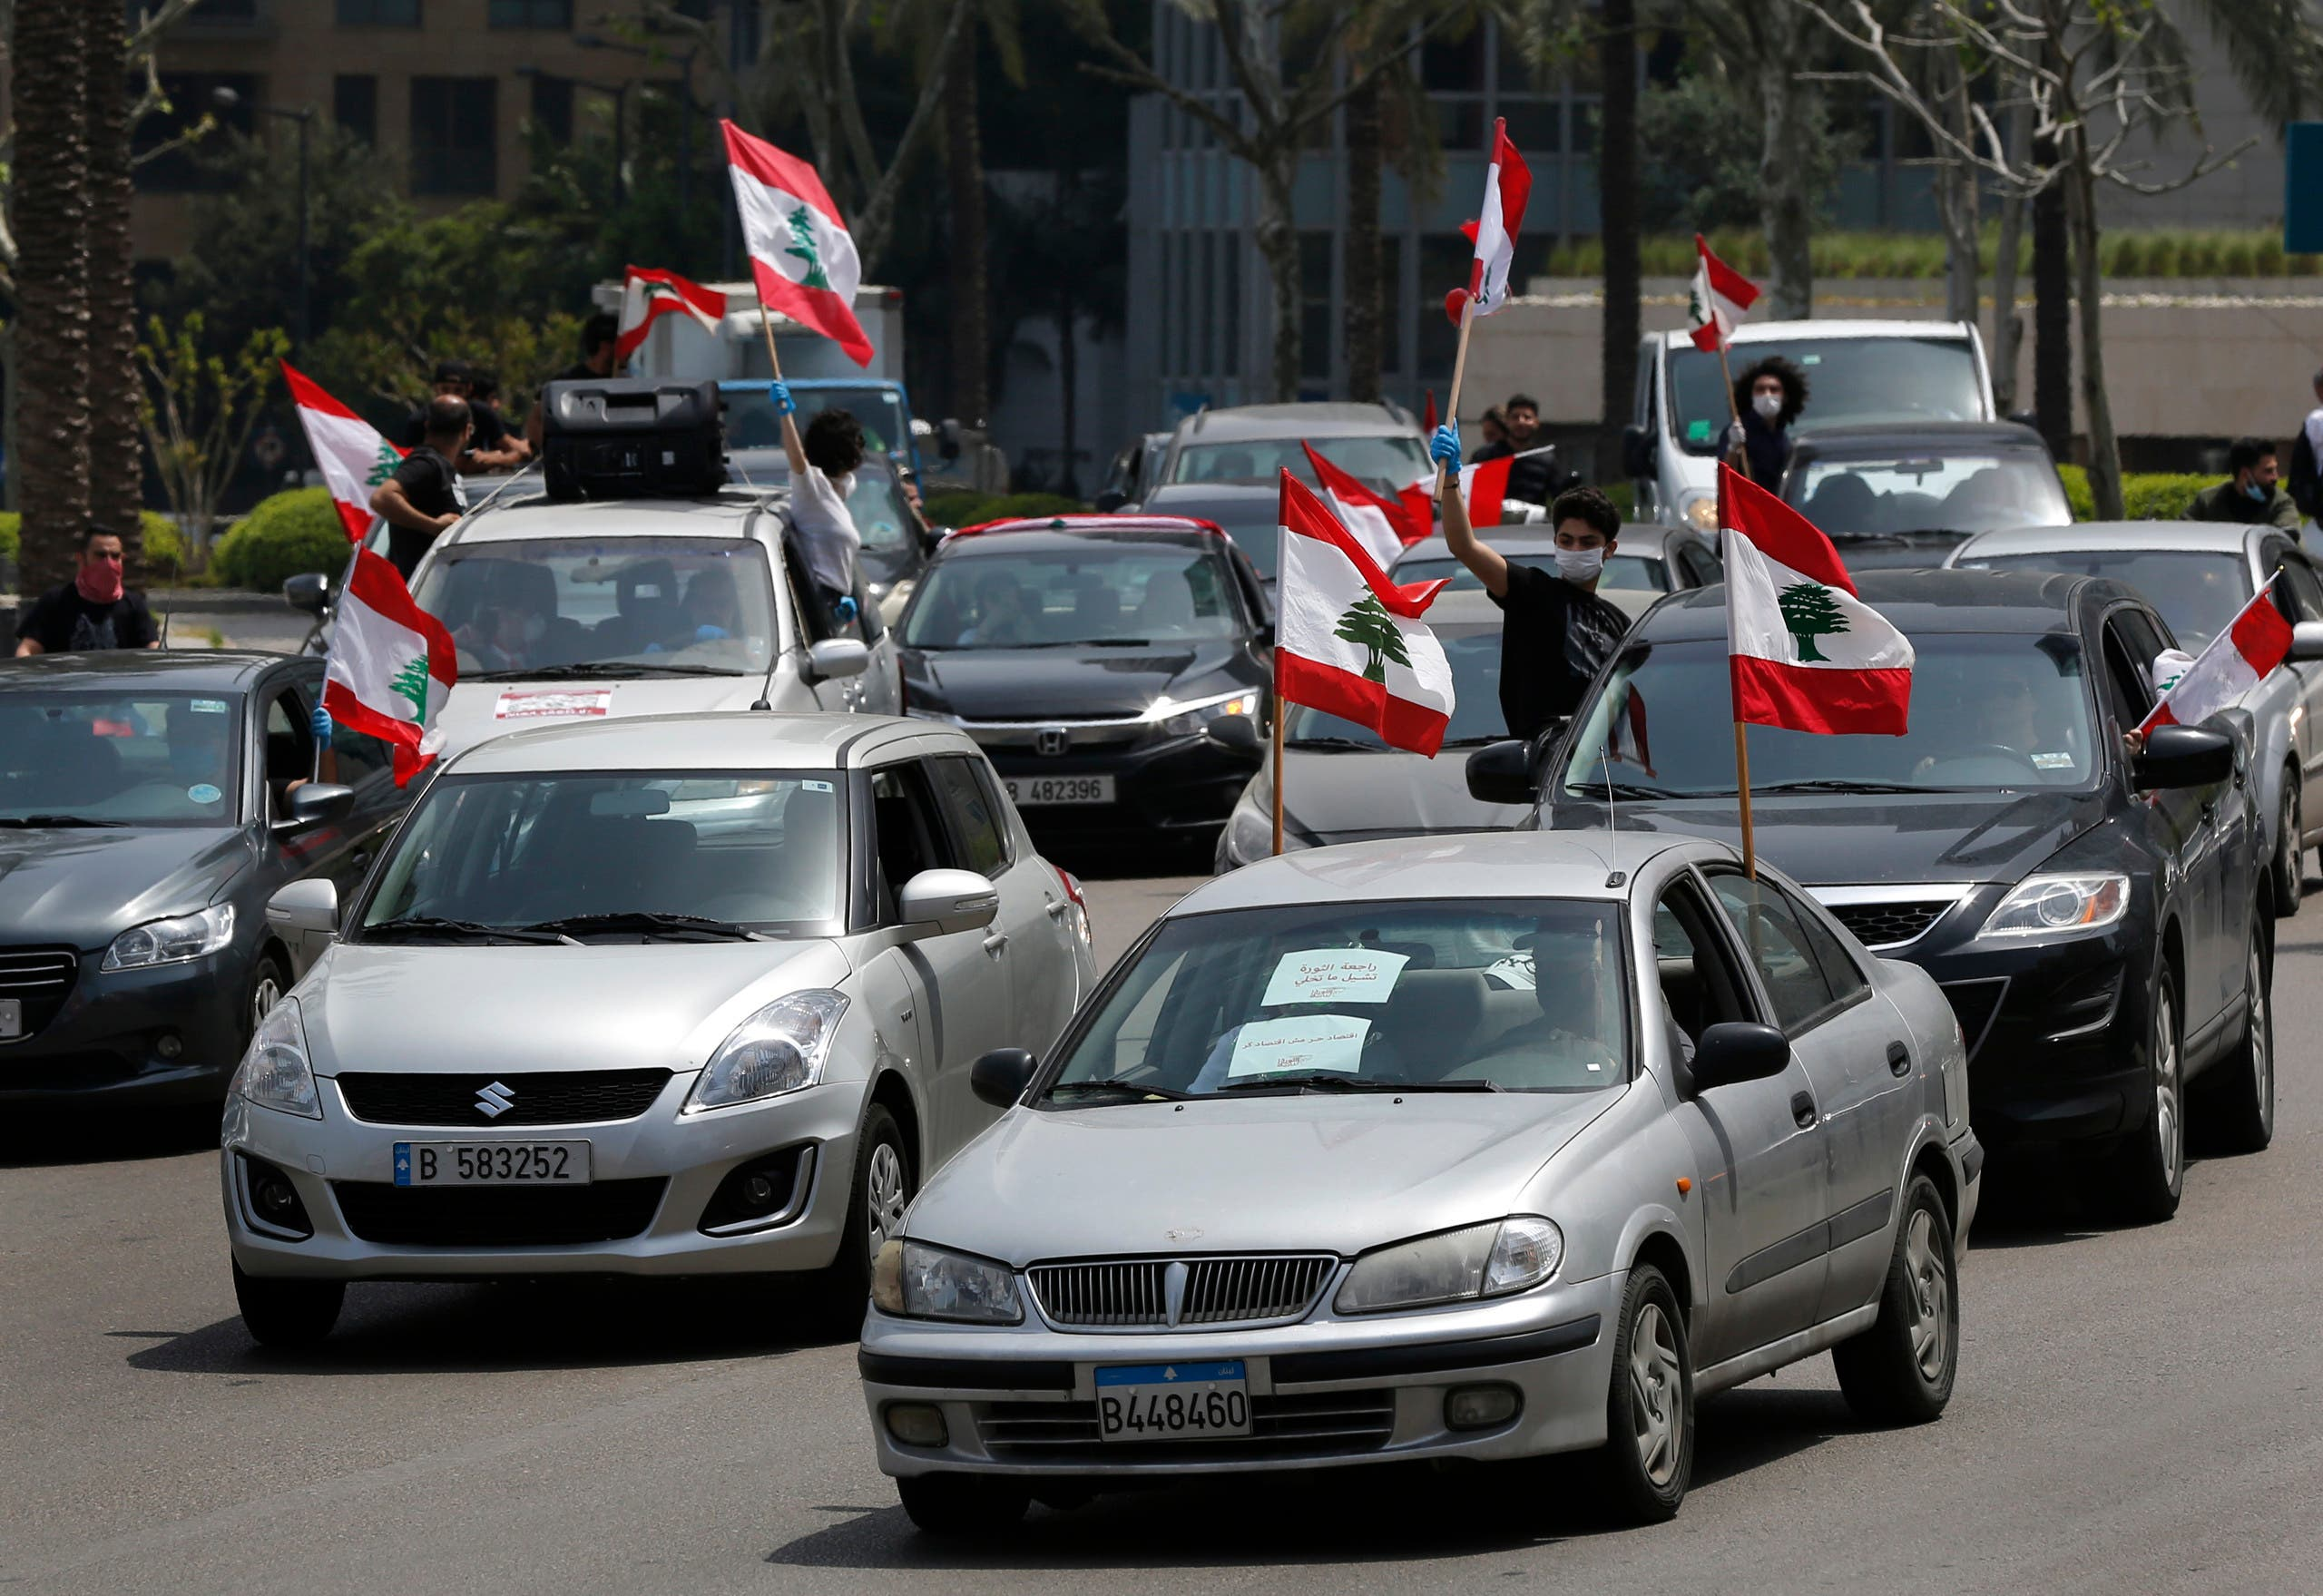 Anti-government protesters wave Lebanese flags from their cars as they protest by driving through the streets, in Beirut, Lebanon, on Tuesday, April 21, 2020. (AP)